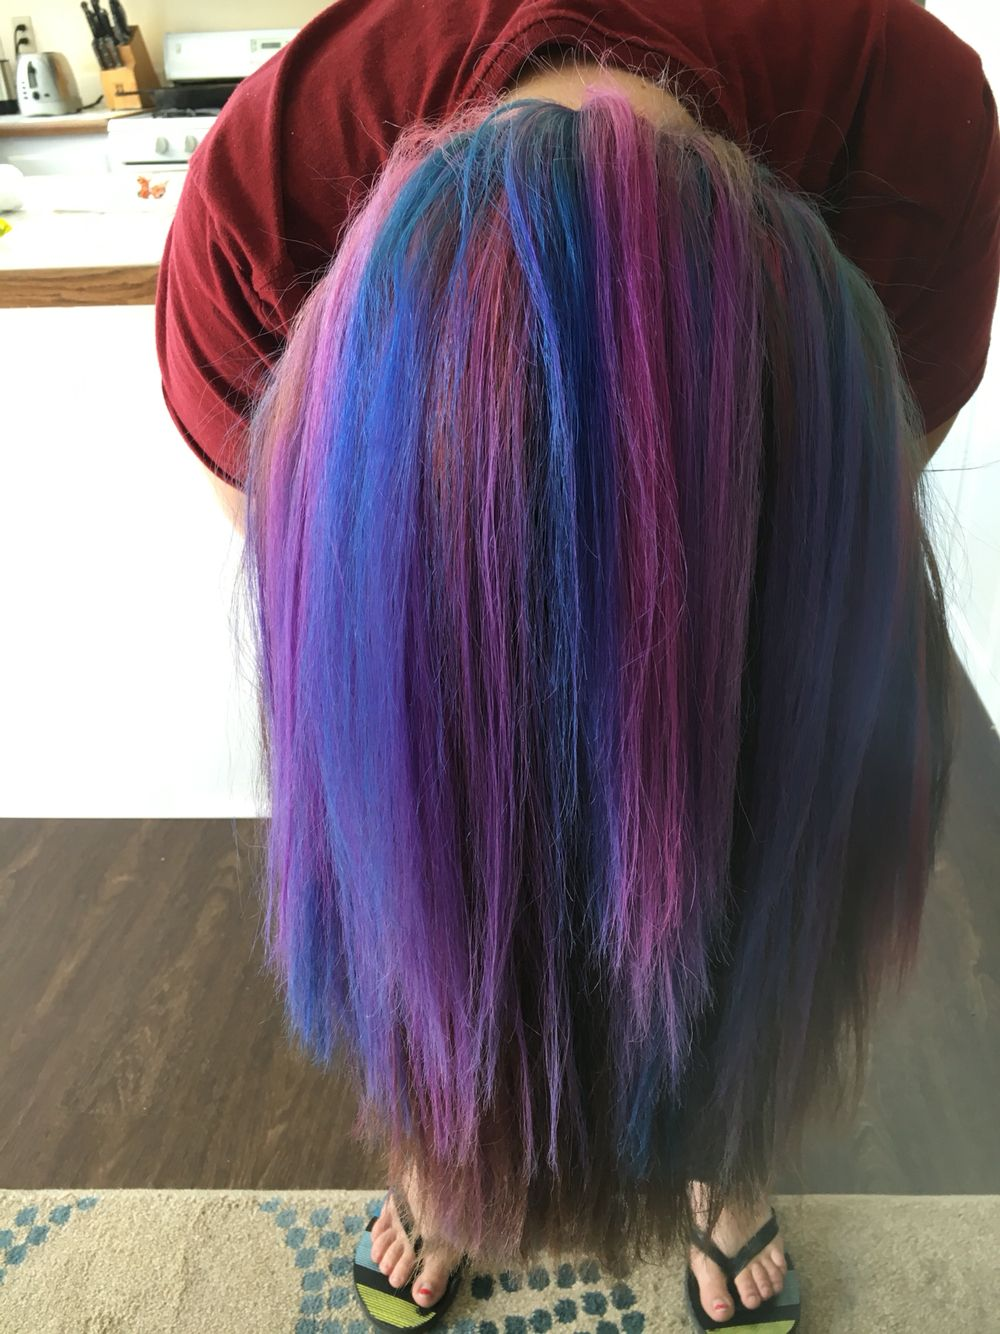 How To Make An Interesting Art Piece Using Tree Branches Ehow Purple Highlights Underneath Highlights Underneath Hair Hair Styles